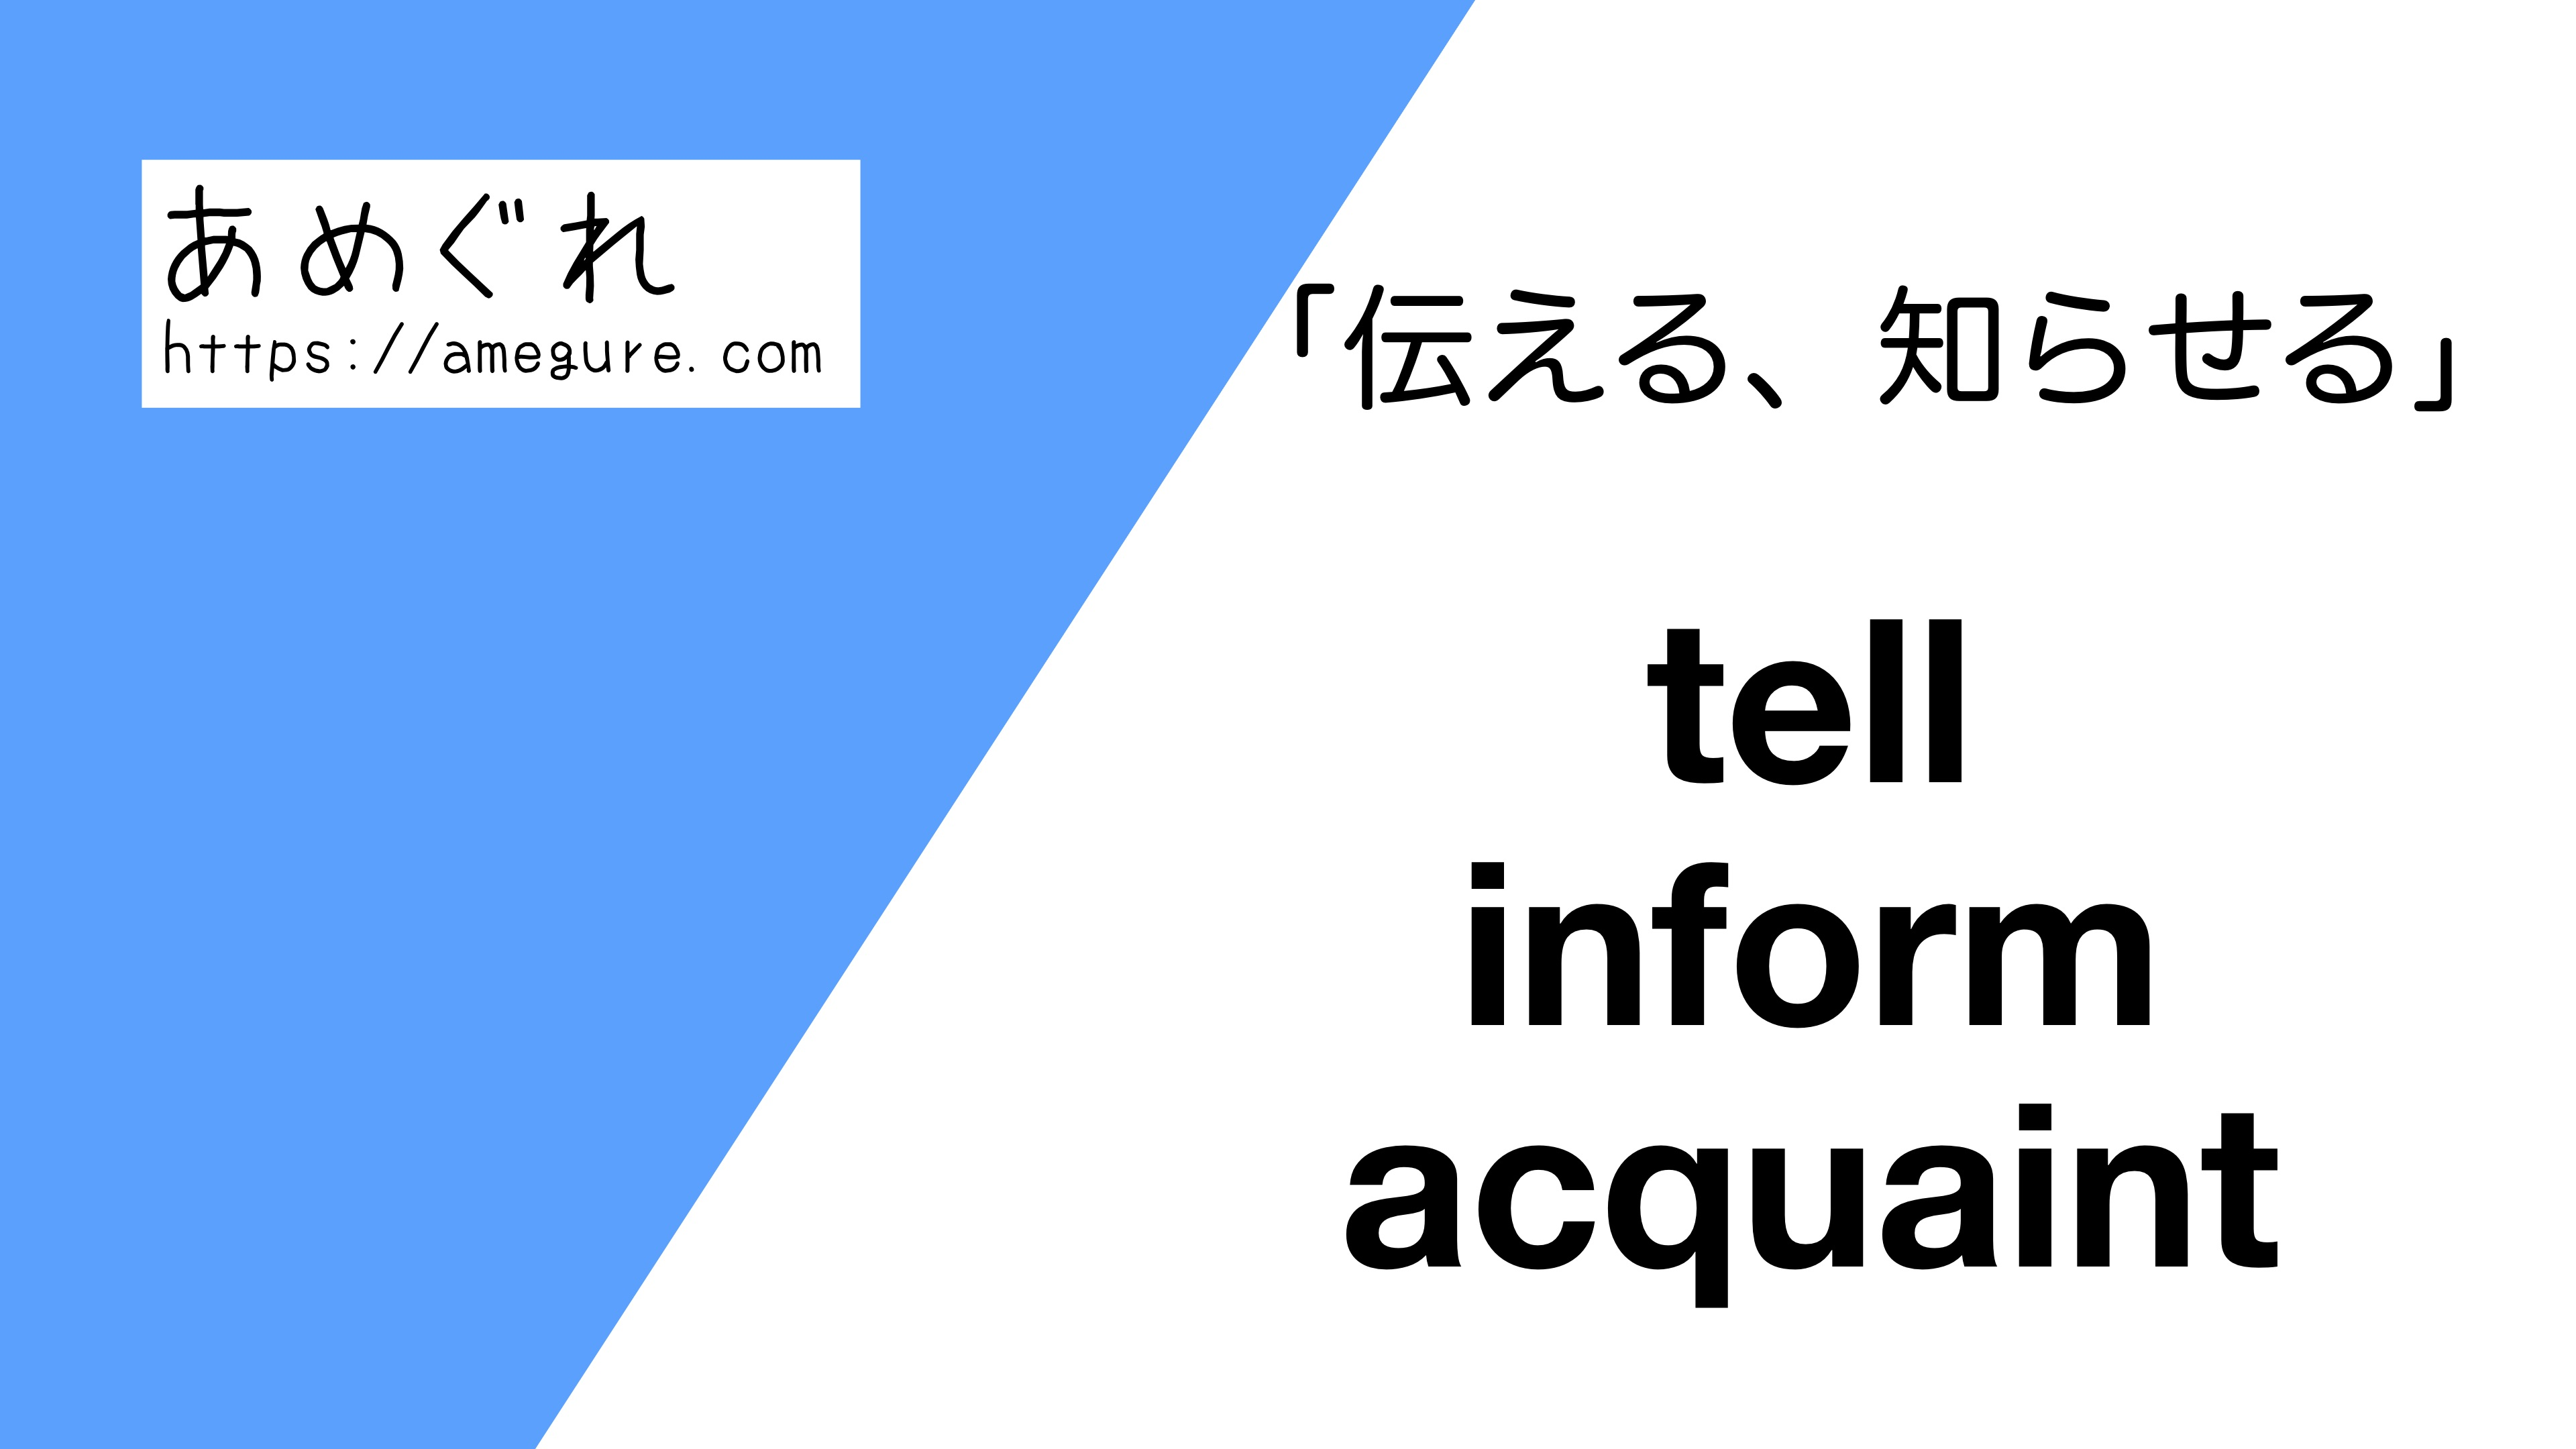 tell-inform-acquaint違い